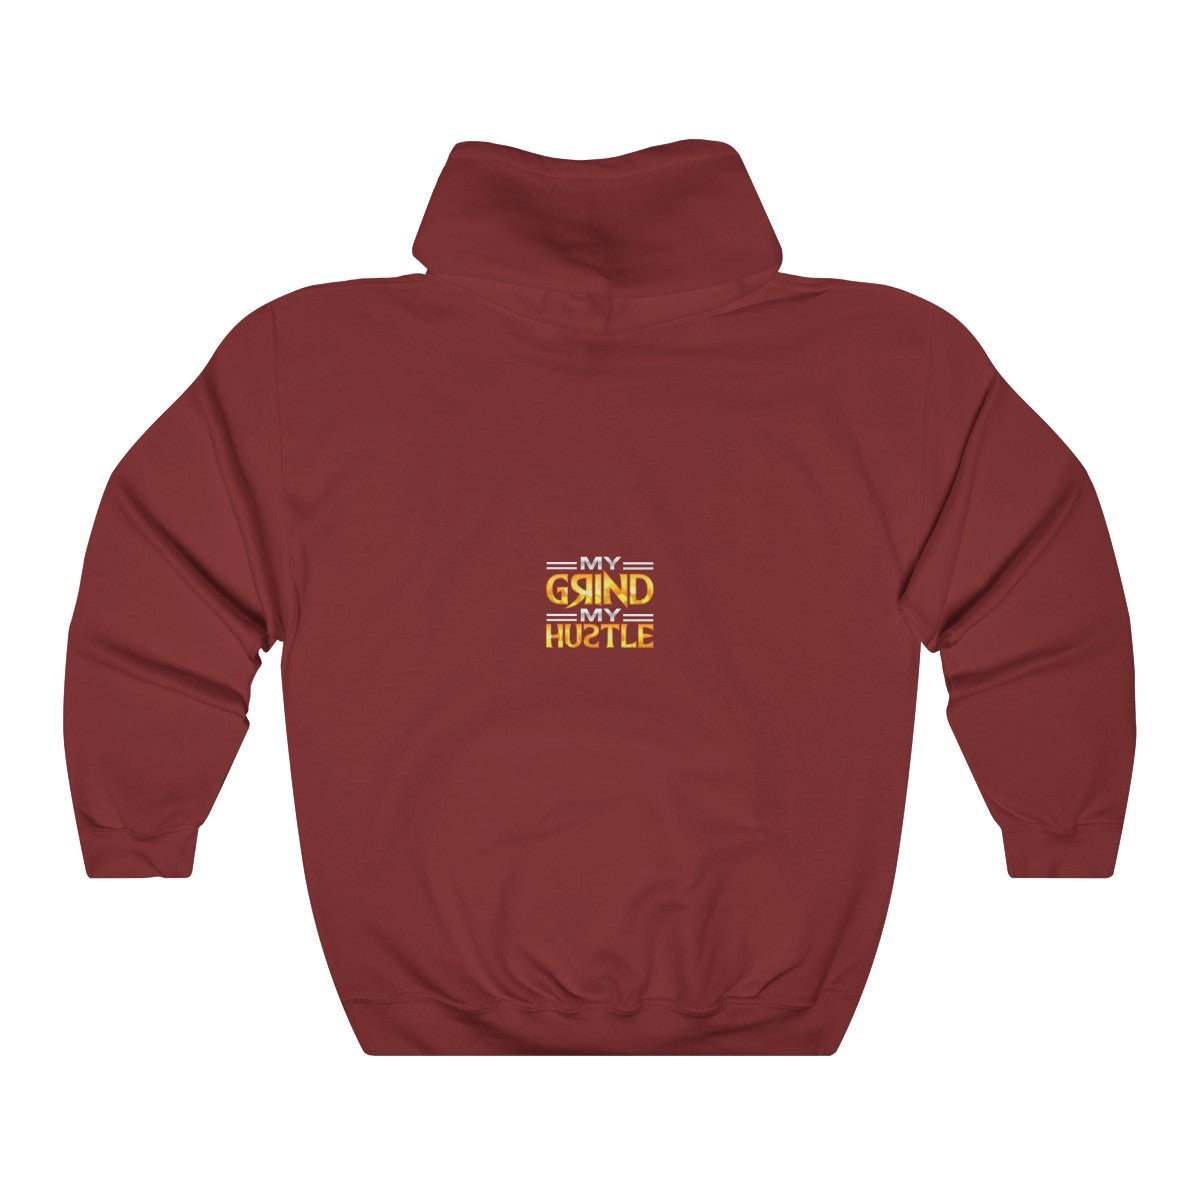 "JohnAlex XIII ""My G@ind My Hu@tle""Hooded Sweatshirt"